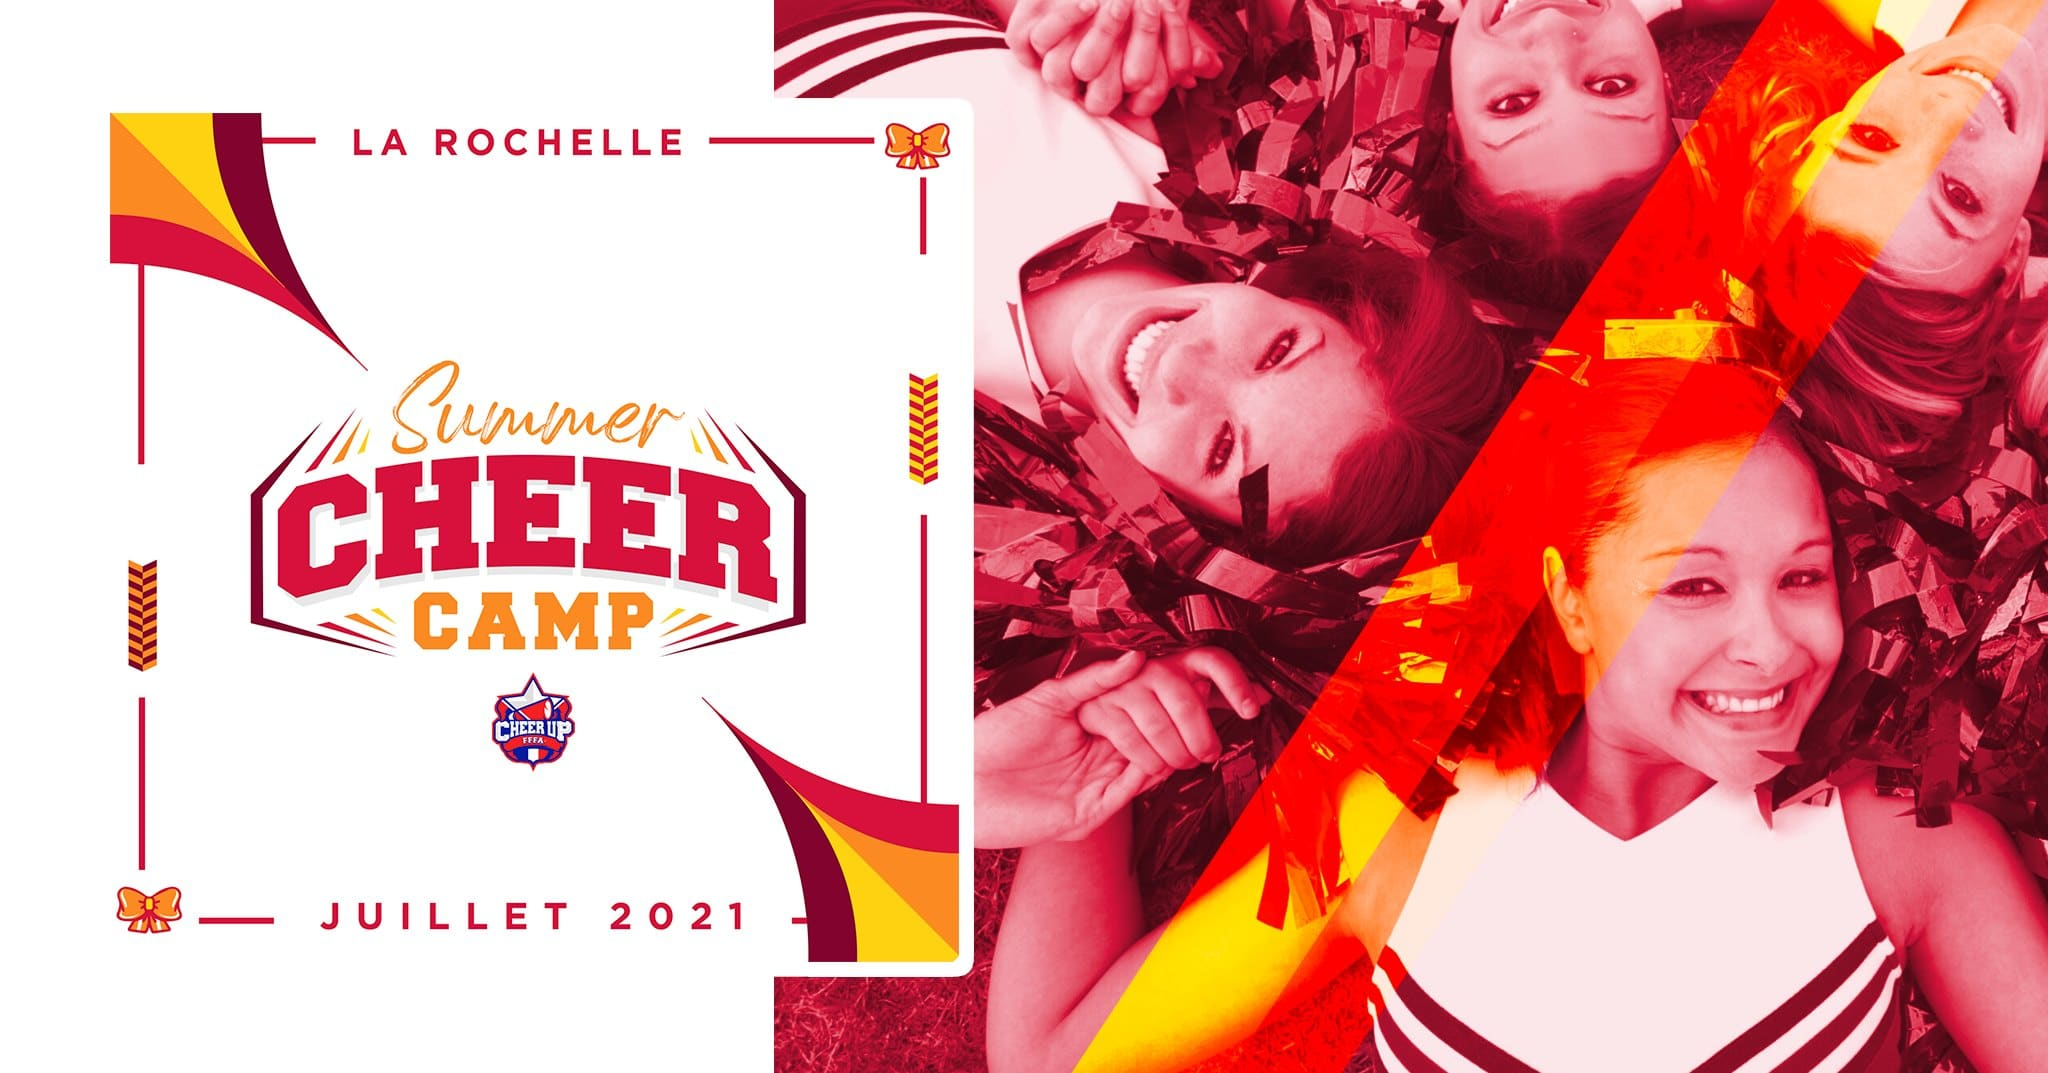 SUMMER CHEER CAMP 2021 | LET'S GO !